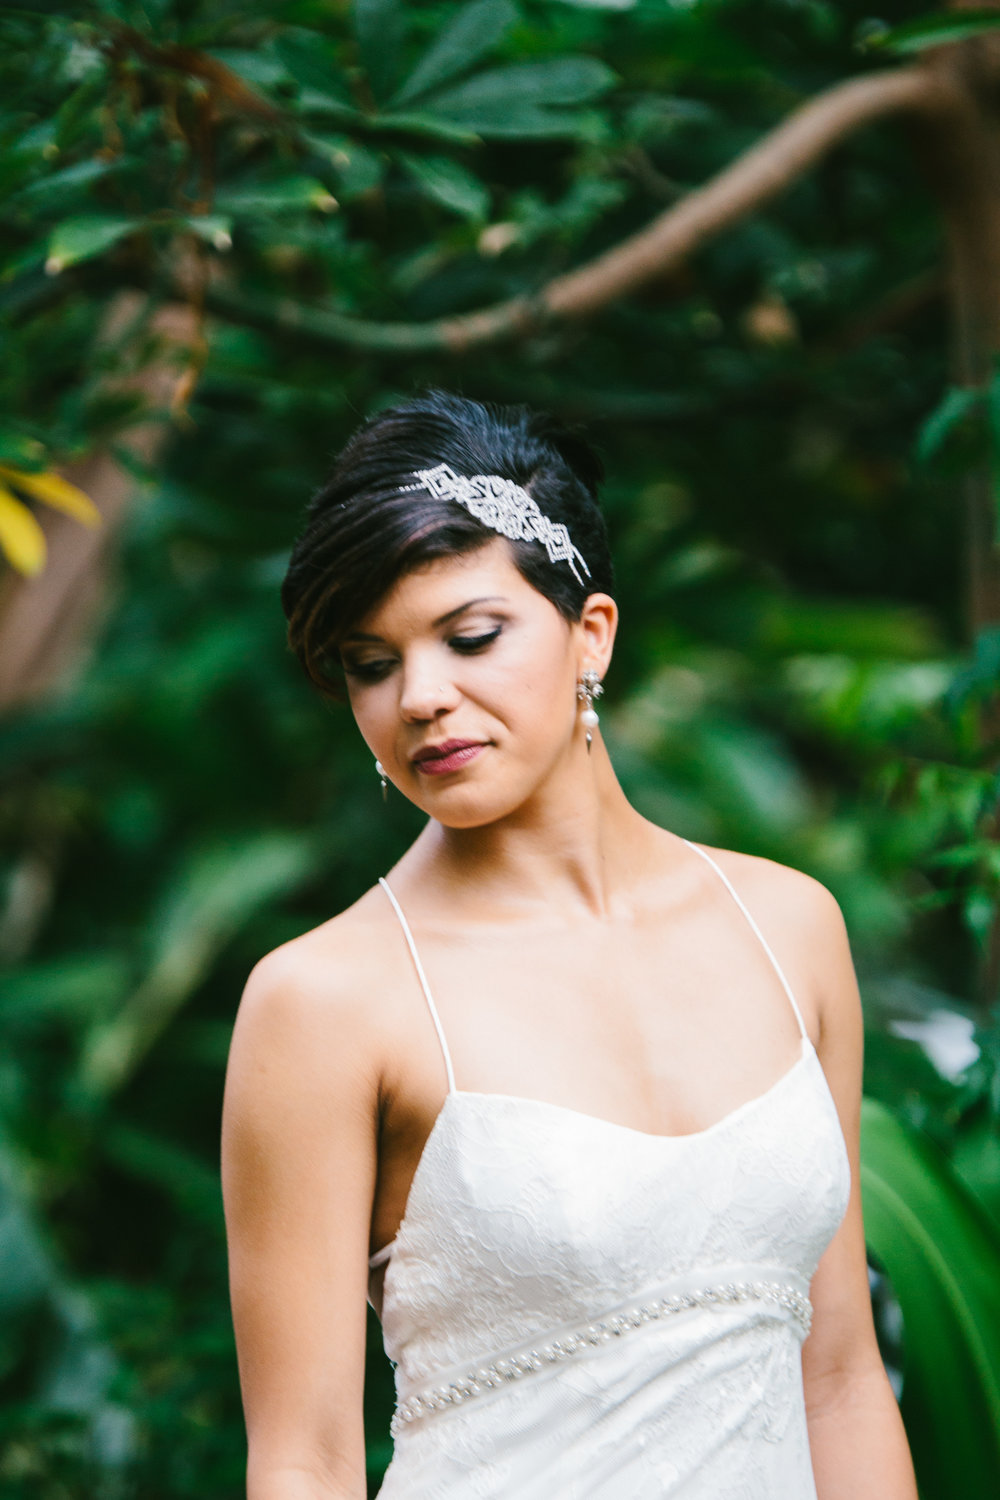 Gorgeous Brides - A Botanical Gardens Budget Wedding - From Britt's Eye View Photography